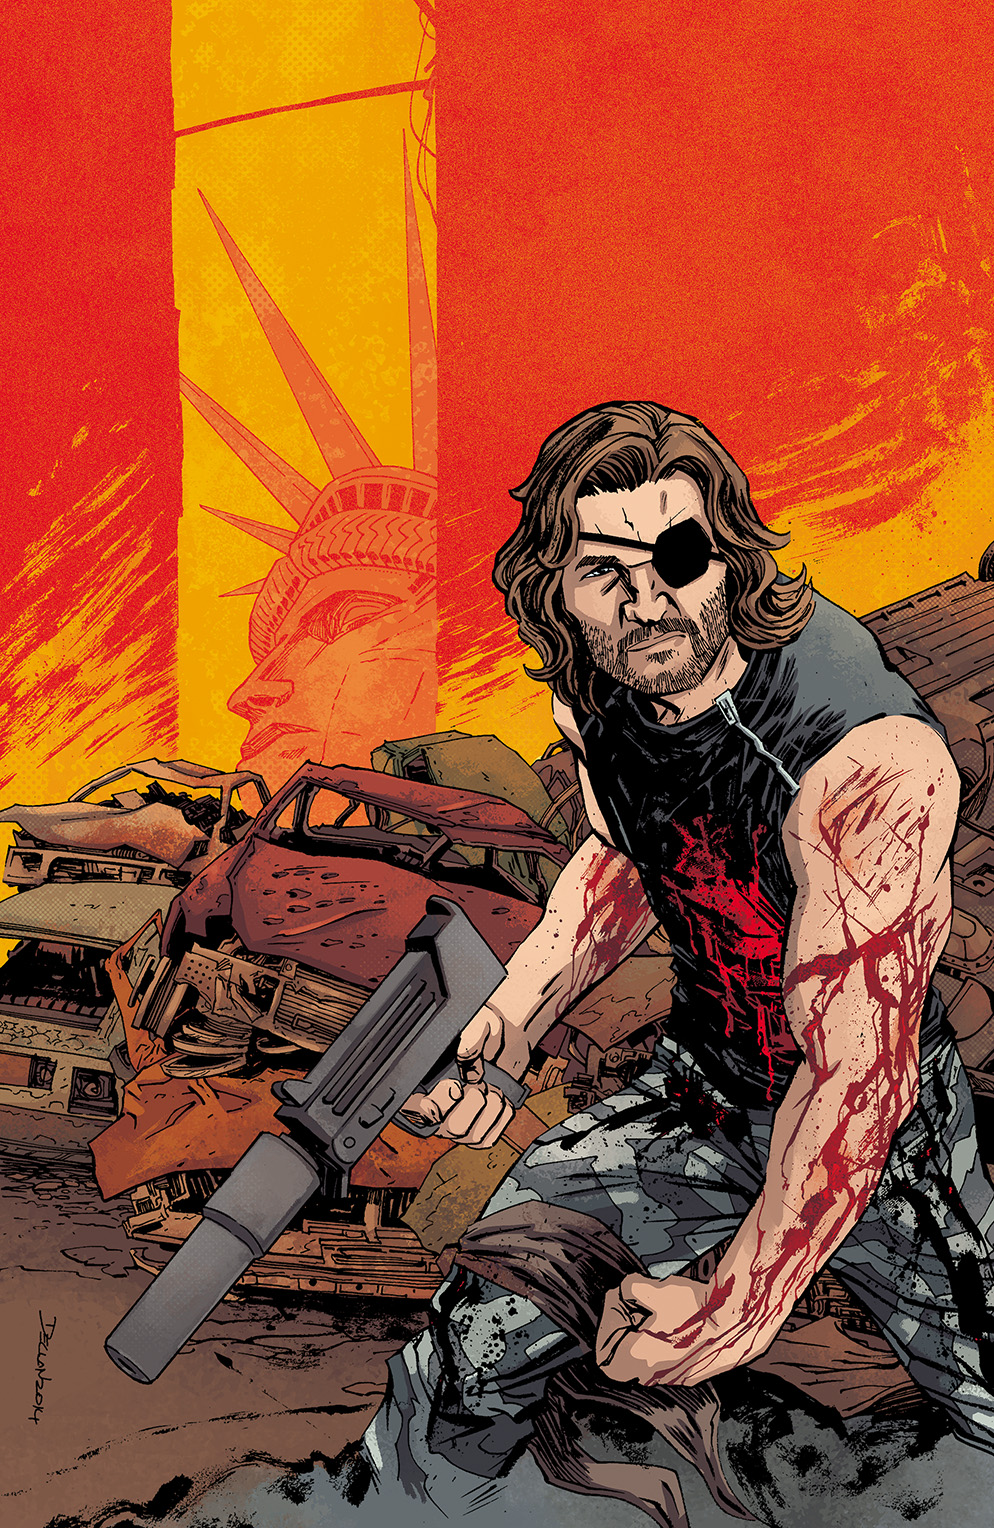 Escape from New York #2 Cover A by Declan Shalvey